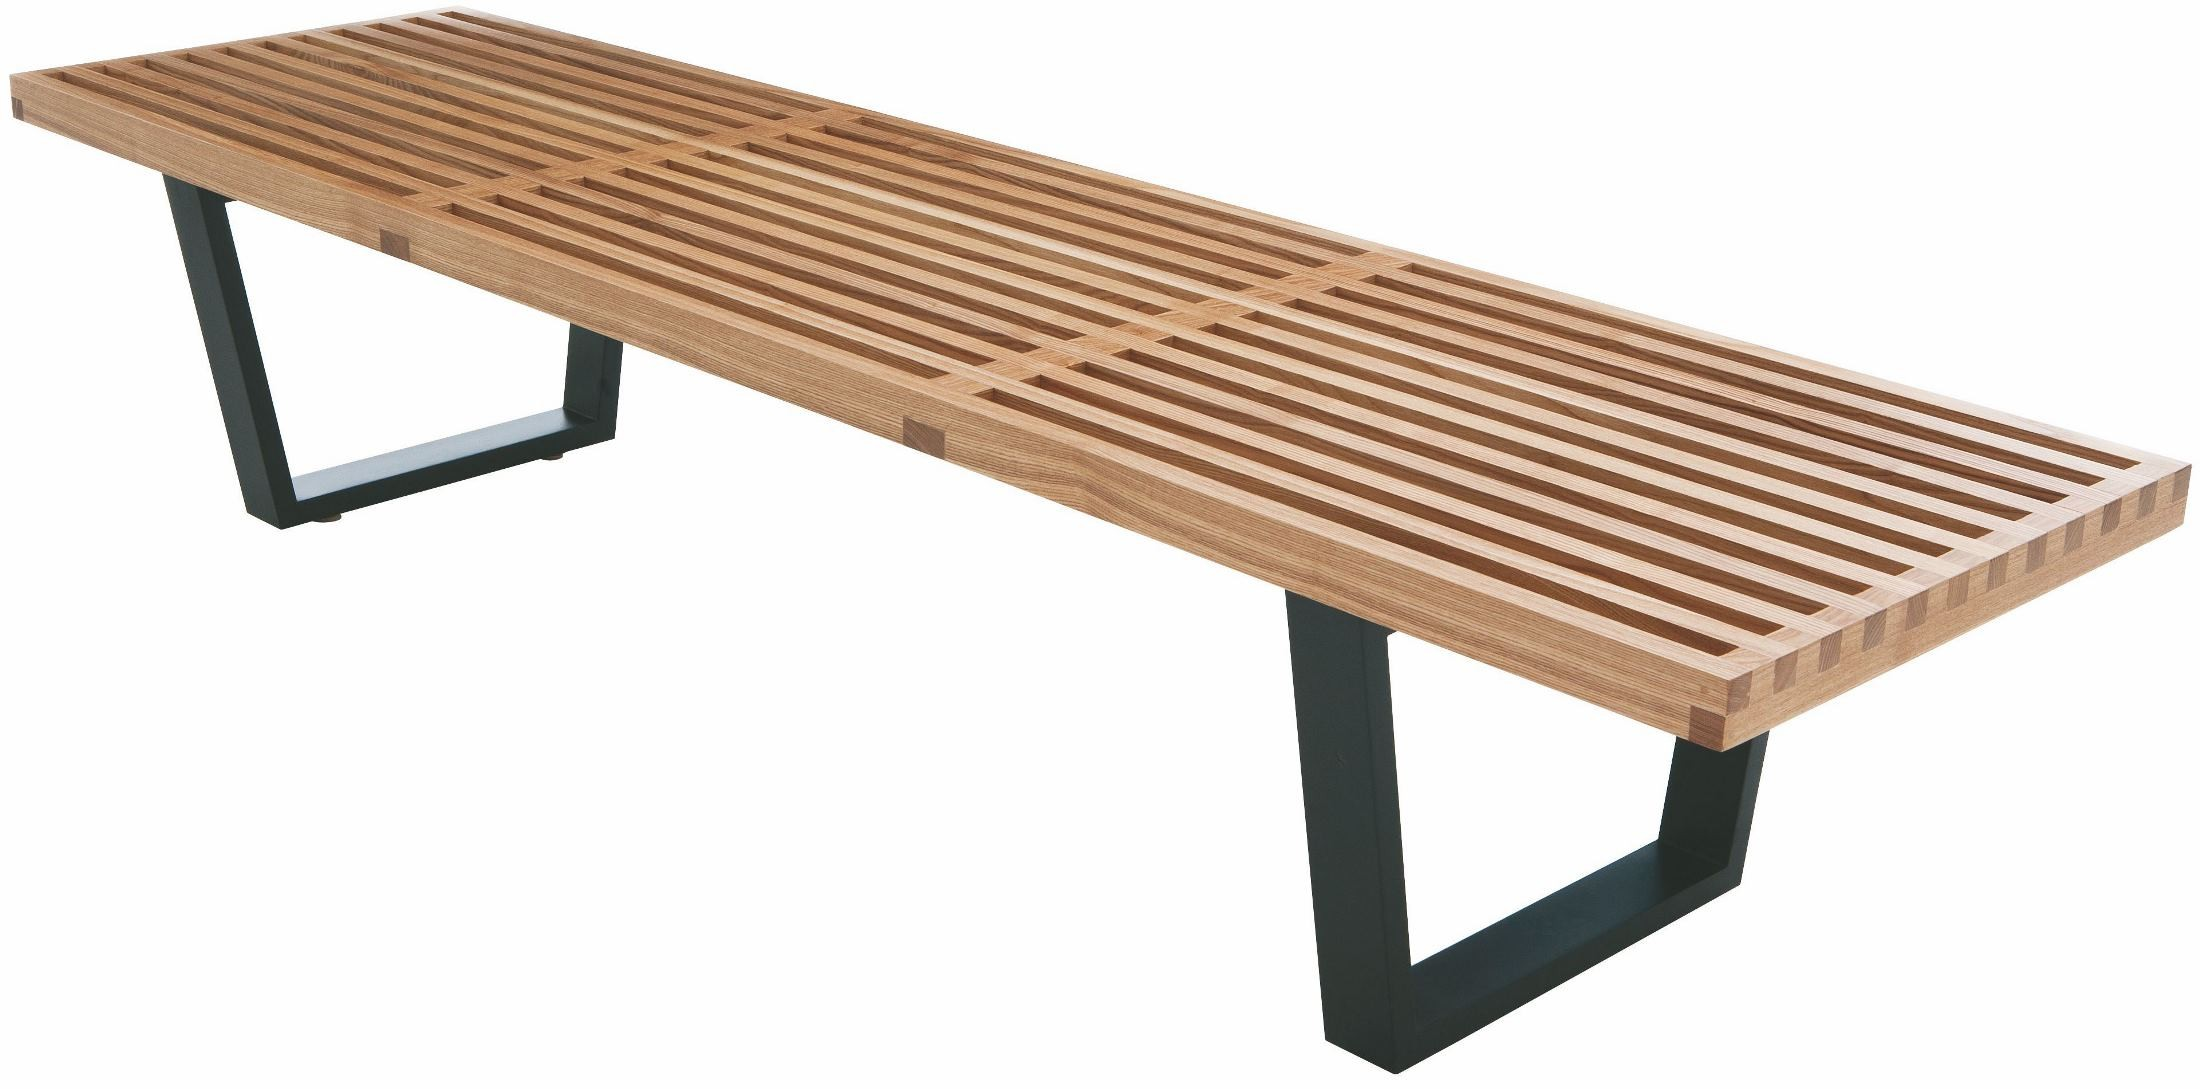 #76492D Home > Tao 60 Ash Wood And Black Wood Occasional Bench with 2200x1089 px of Brand New Black Wood Bench 10892200 pic @ avoidforclosure.info